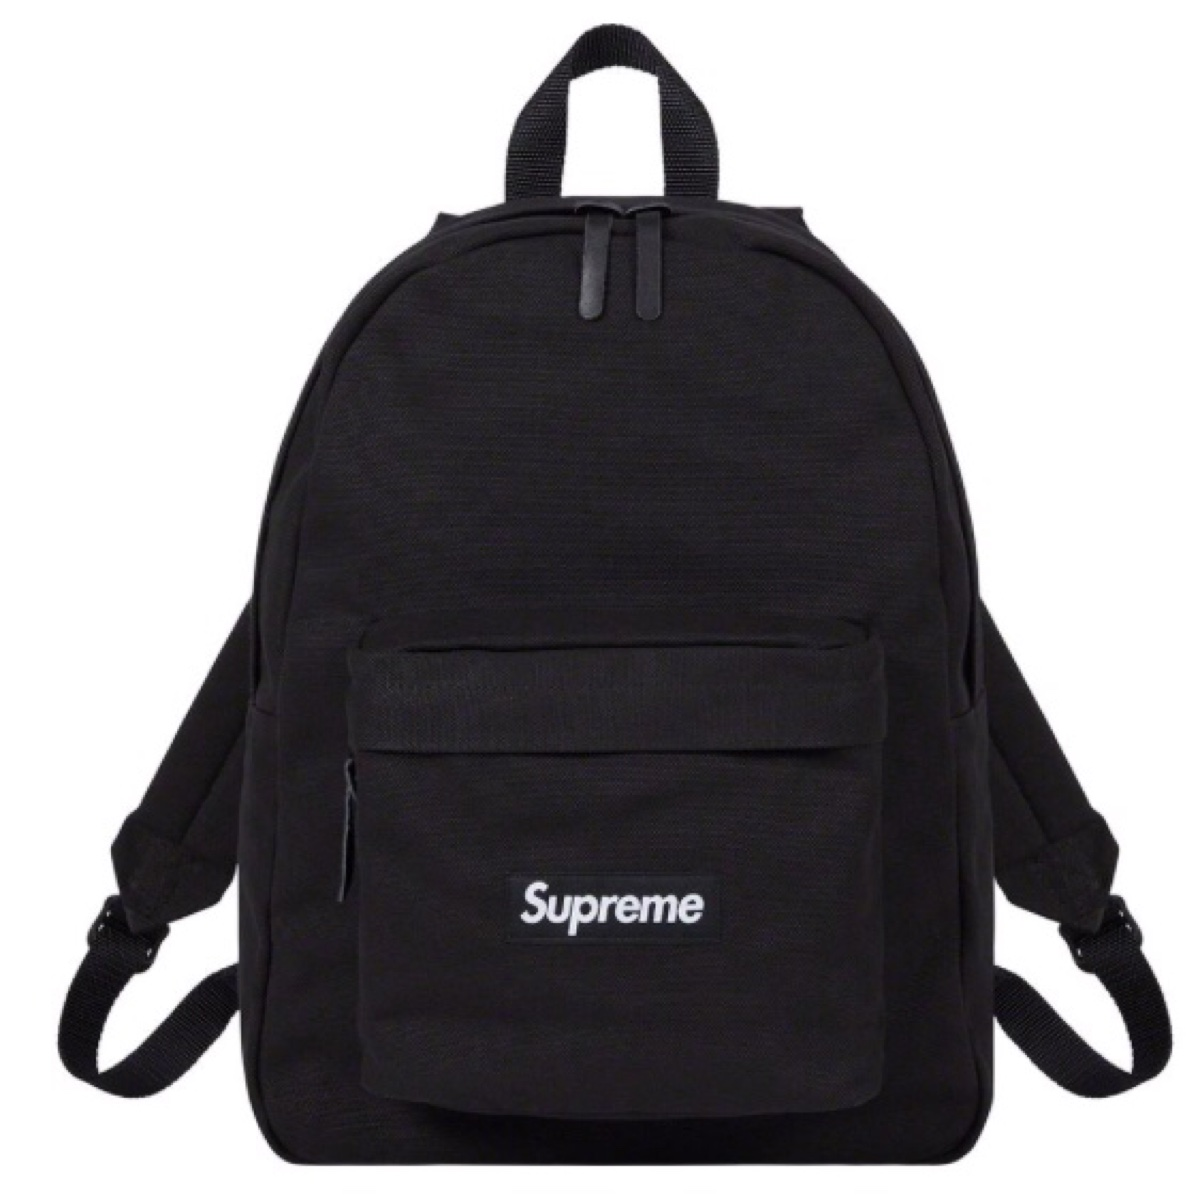 Supreme Canvas Backpack Black